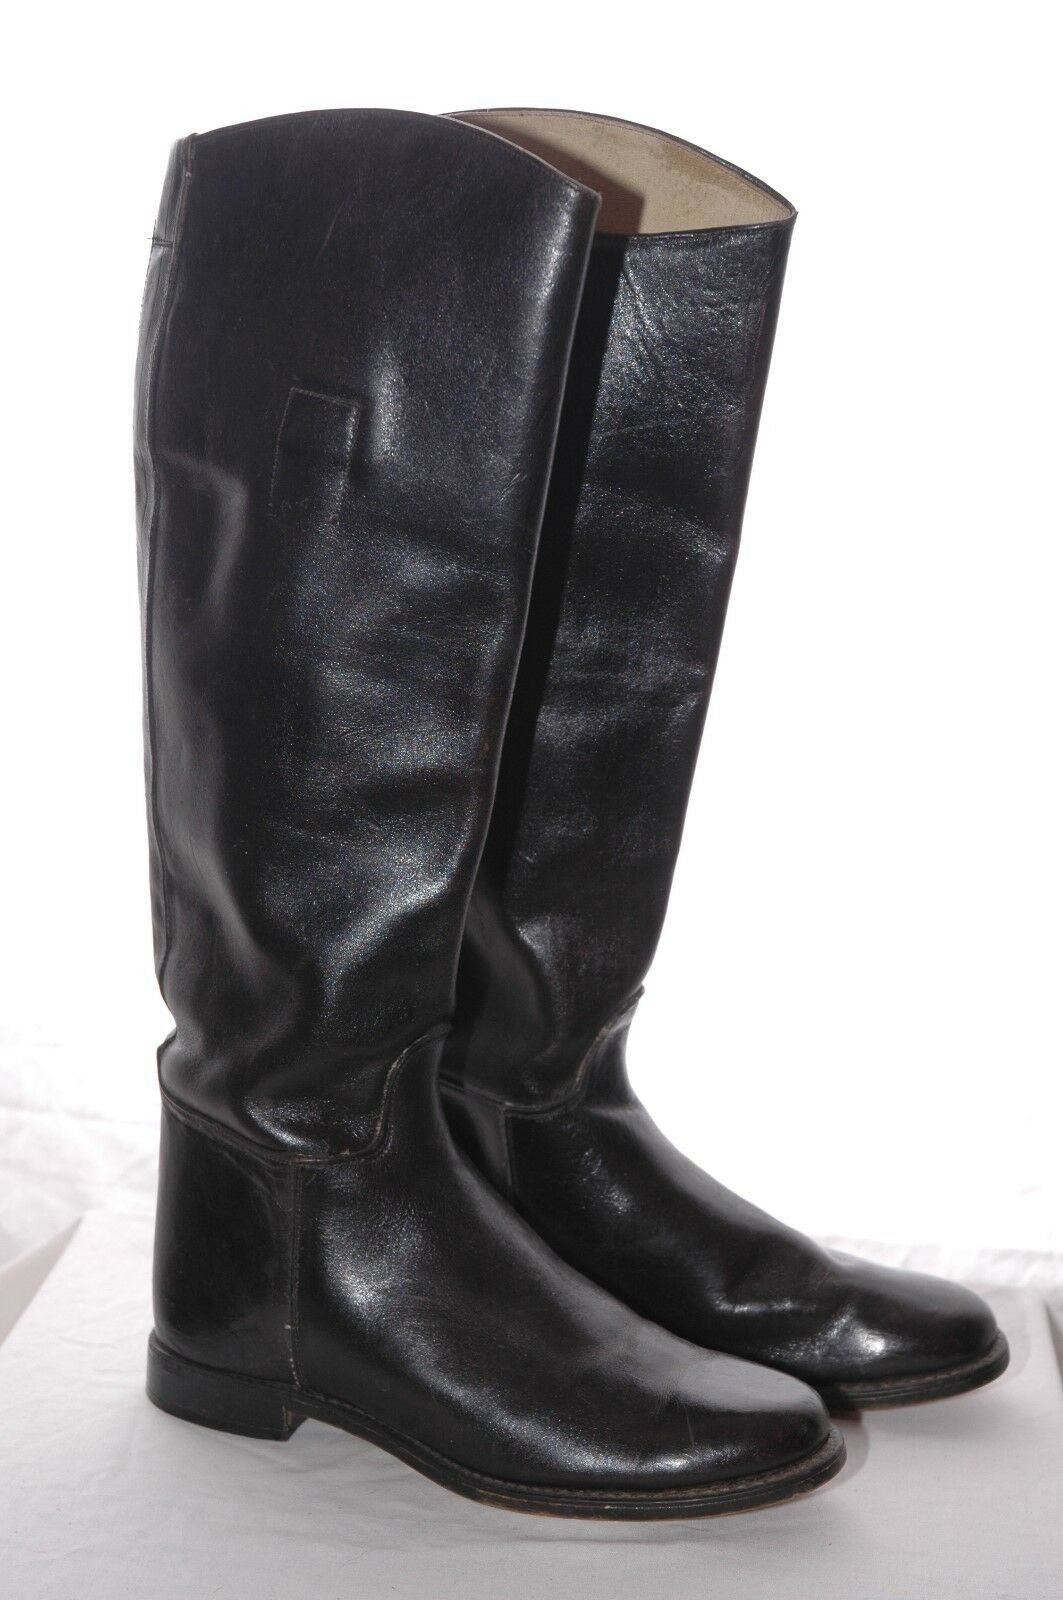 LEATHER Tall RIDING BOOTS Equestrian Pulls Rodeo Vintage Made USA Womens 7.5